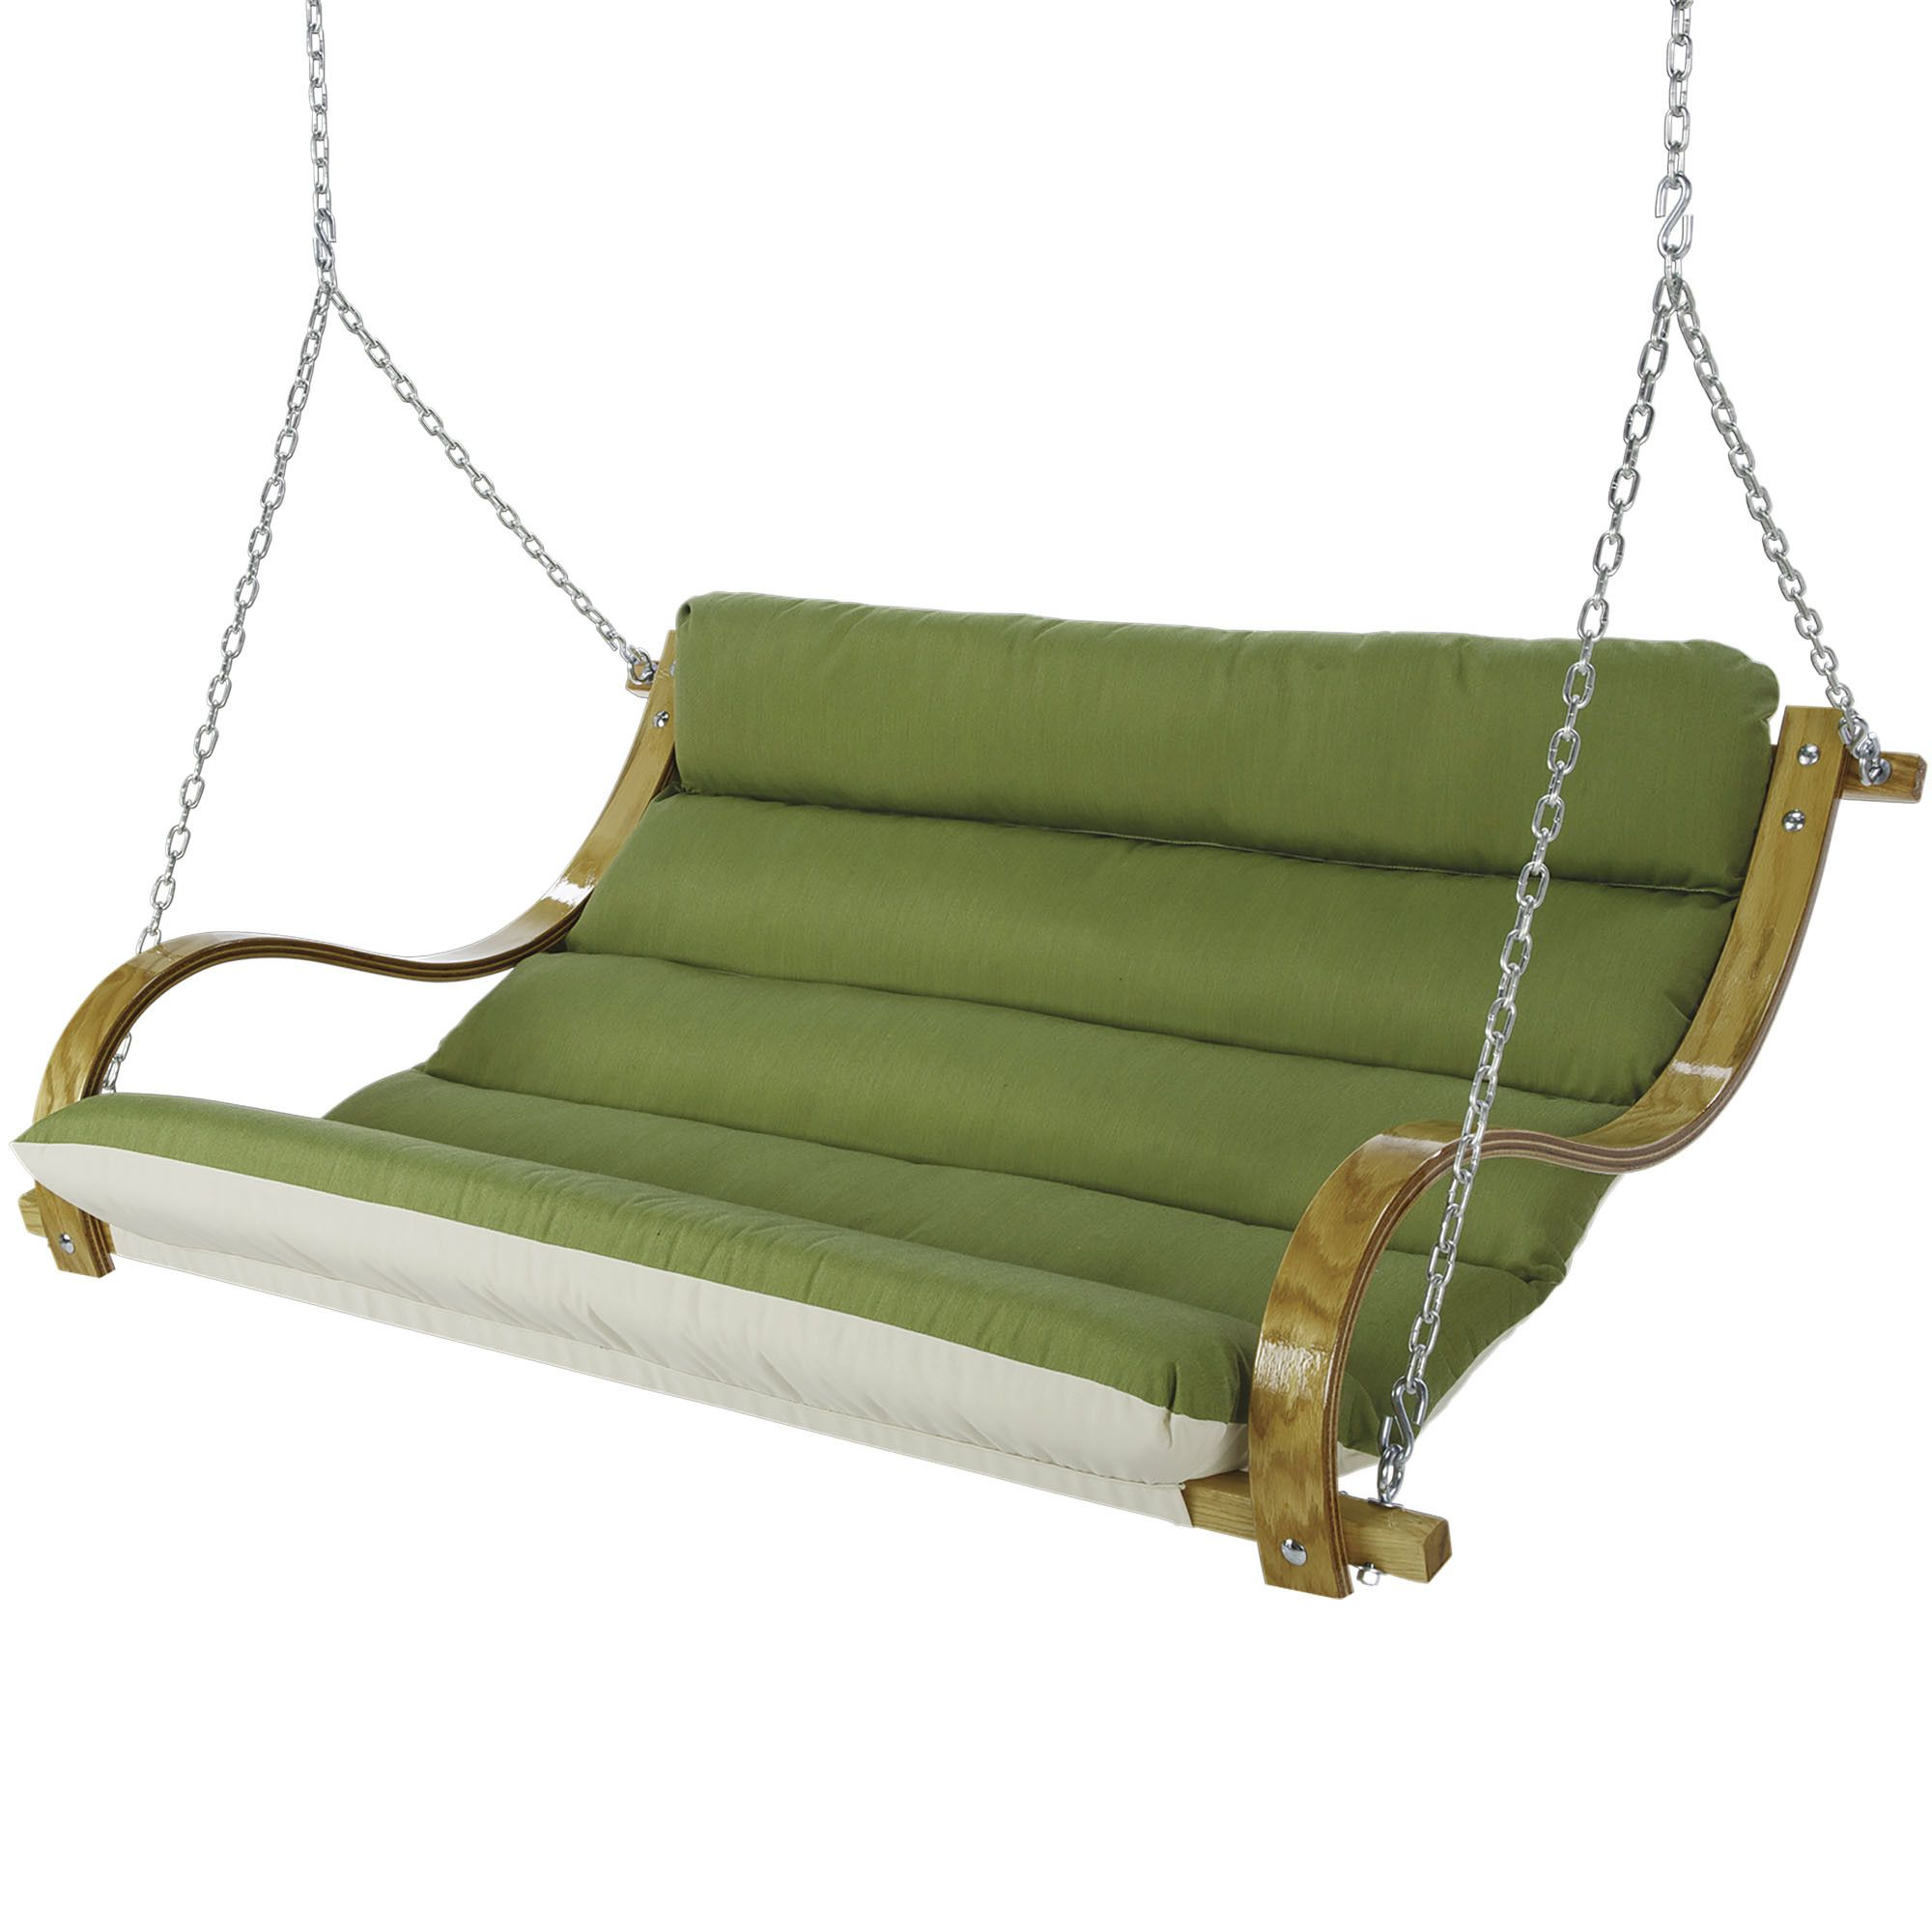 yard patio tulum l double smsender person outdoor seat furniture for porch loveseat swing chair co ebay bench hammock canopy